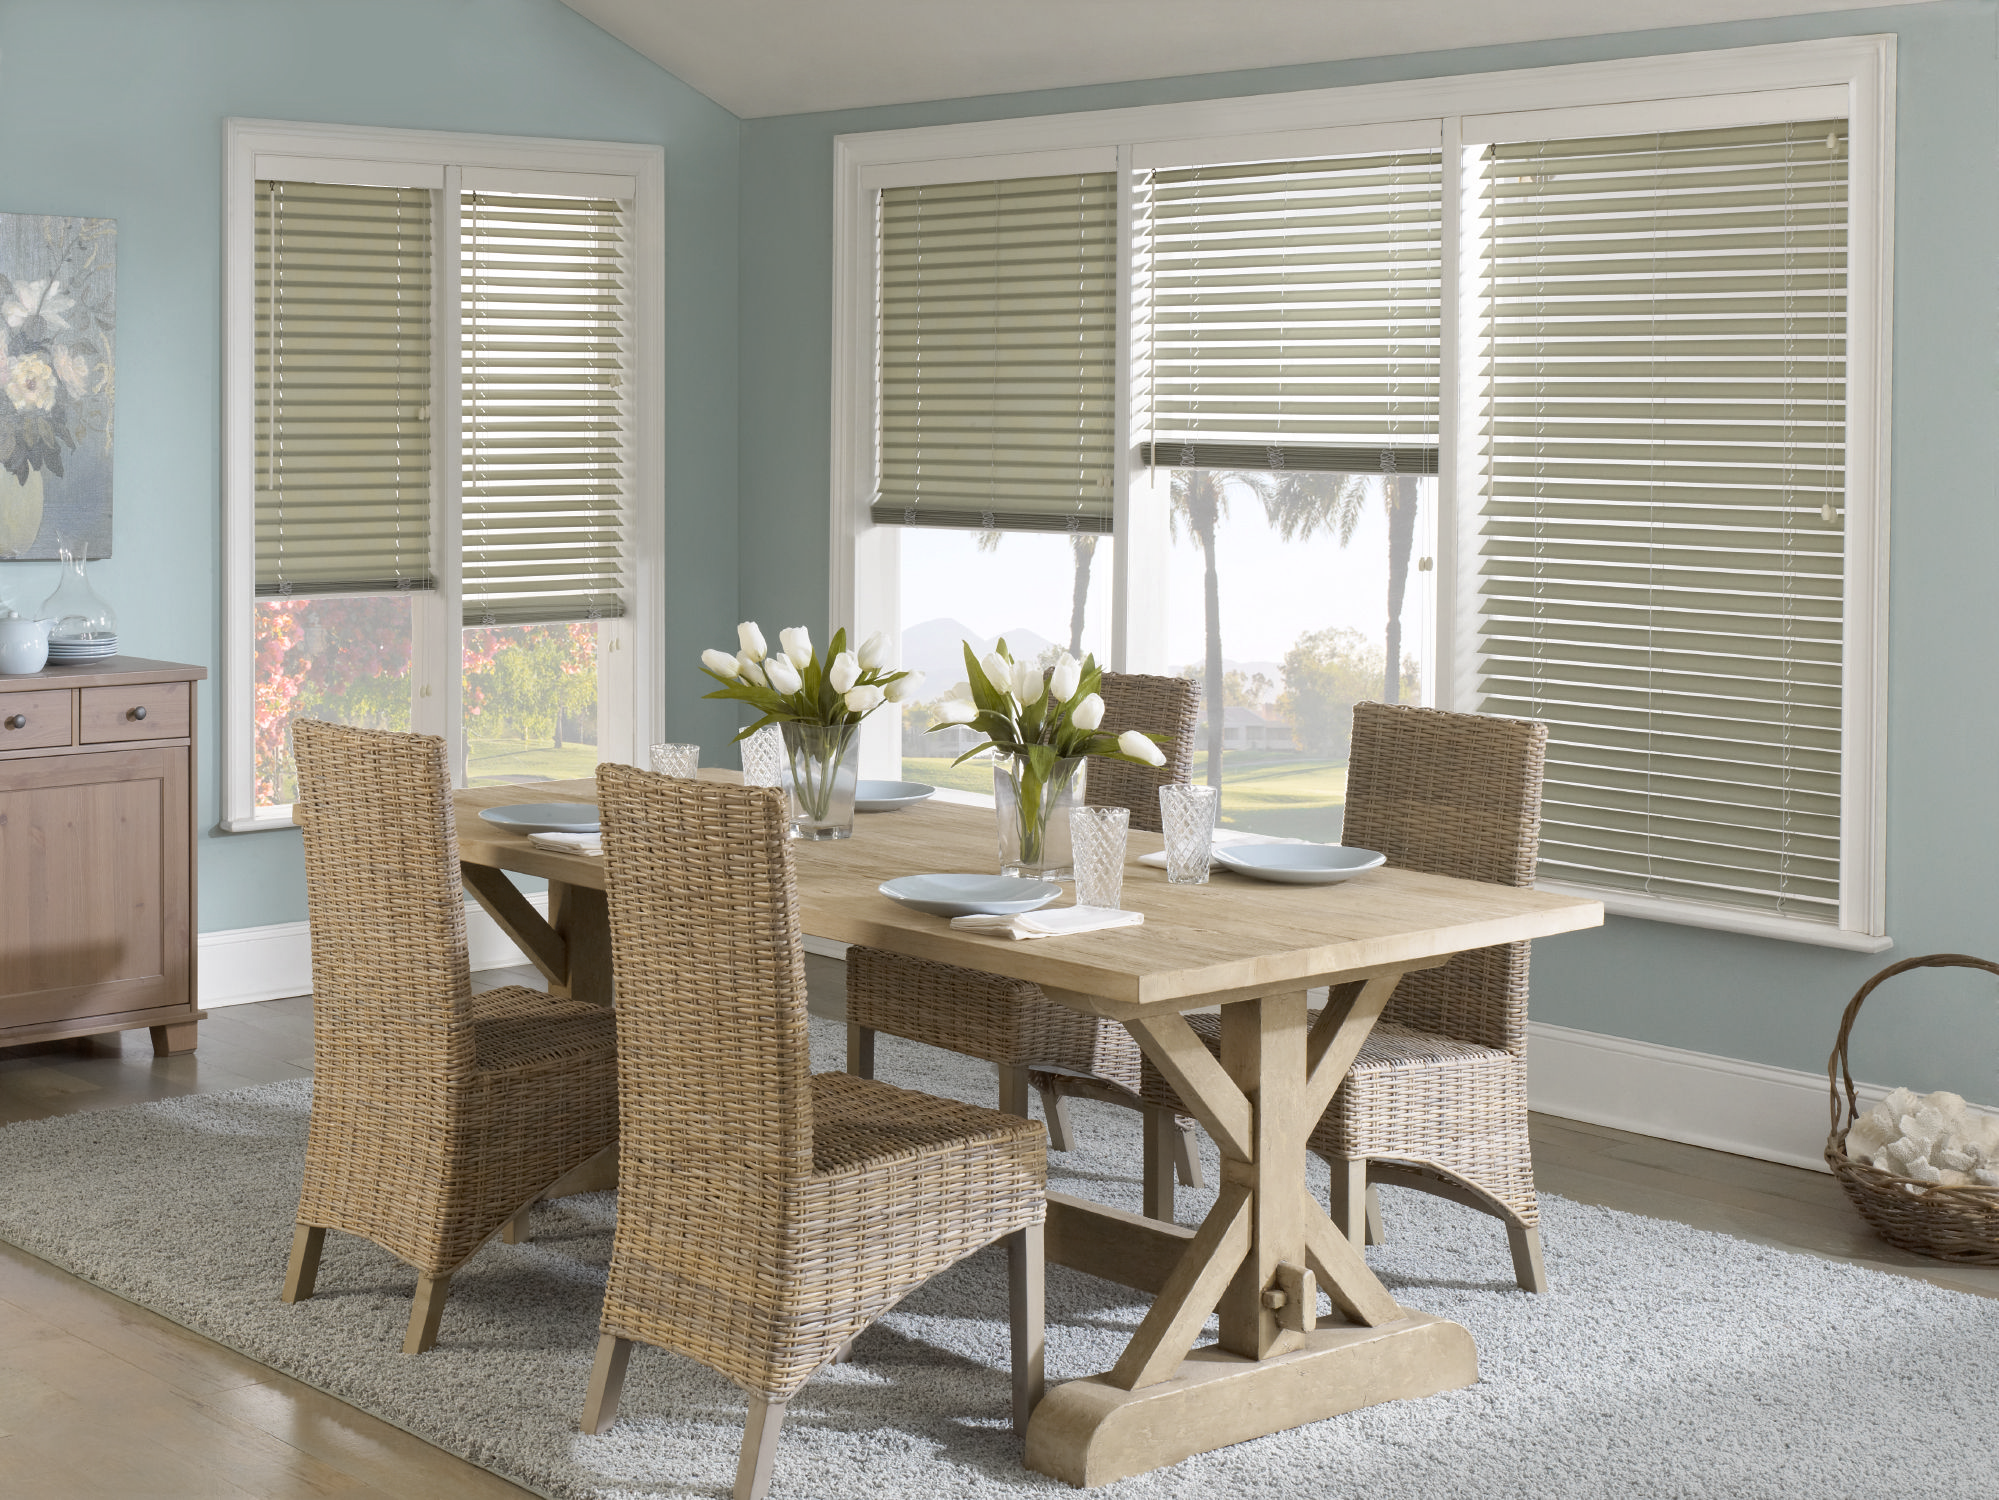 Dining Room Window Blinds Muranos Updated With A Standard Wood Valance Signature Murano